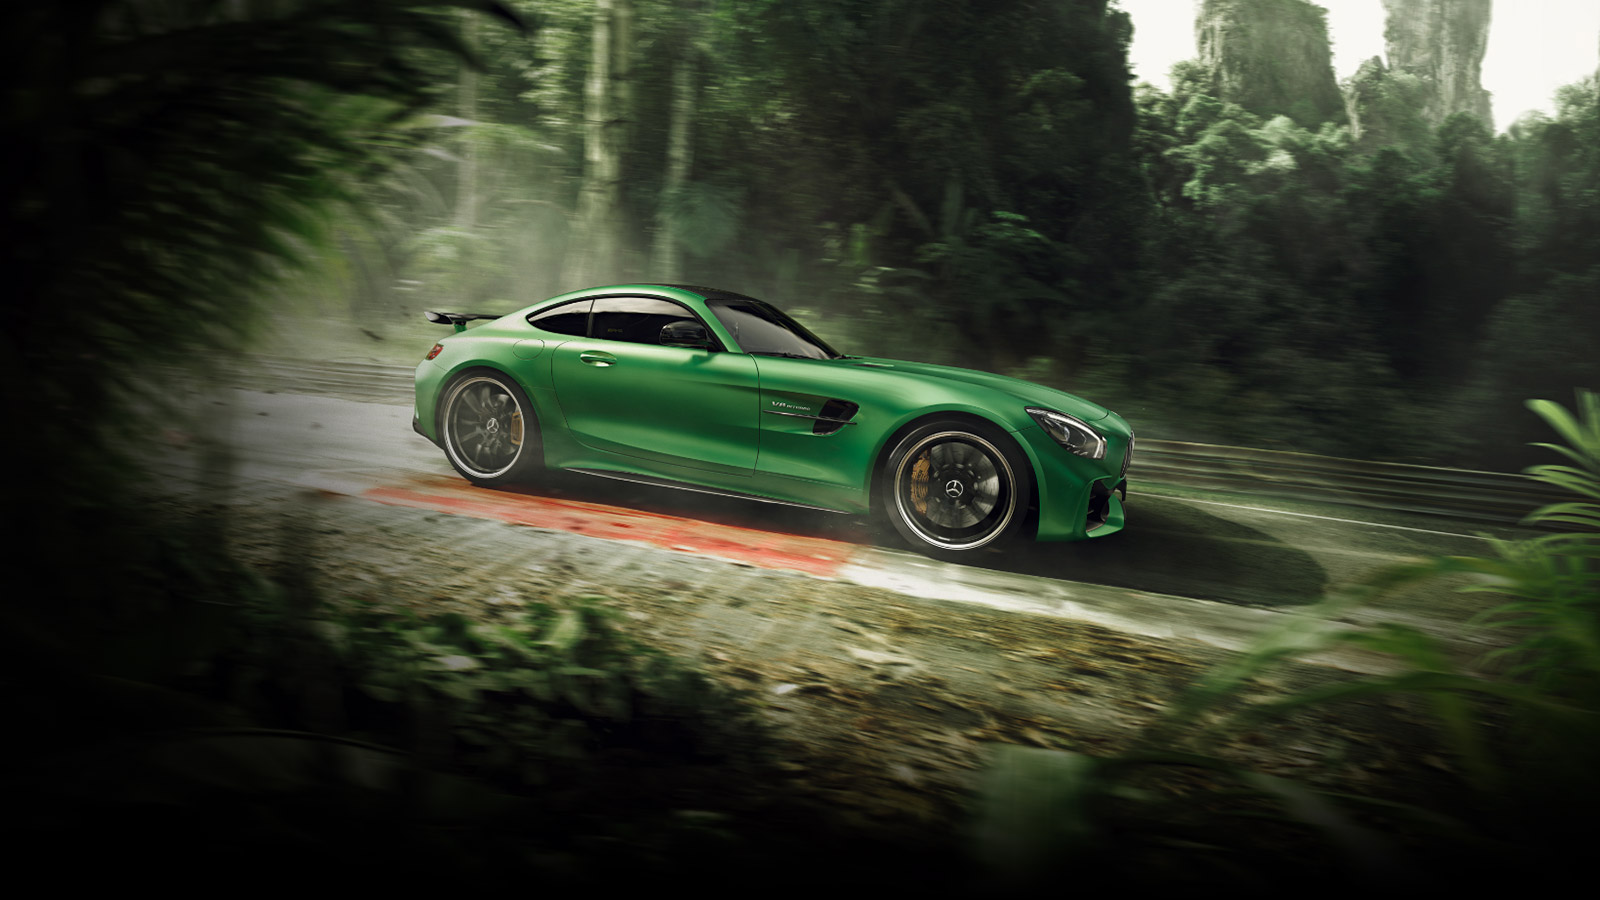 AMG Green Machine